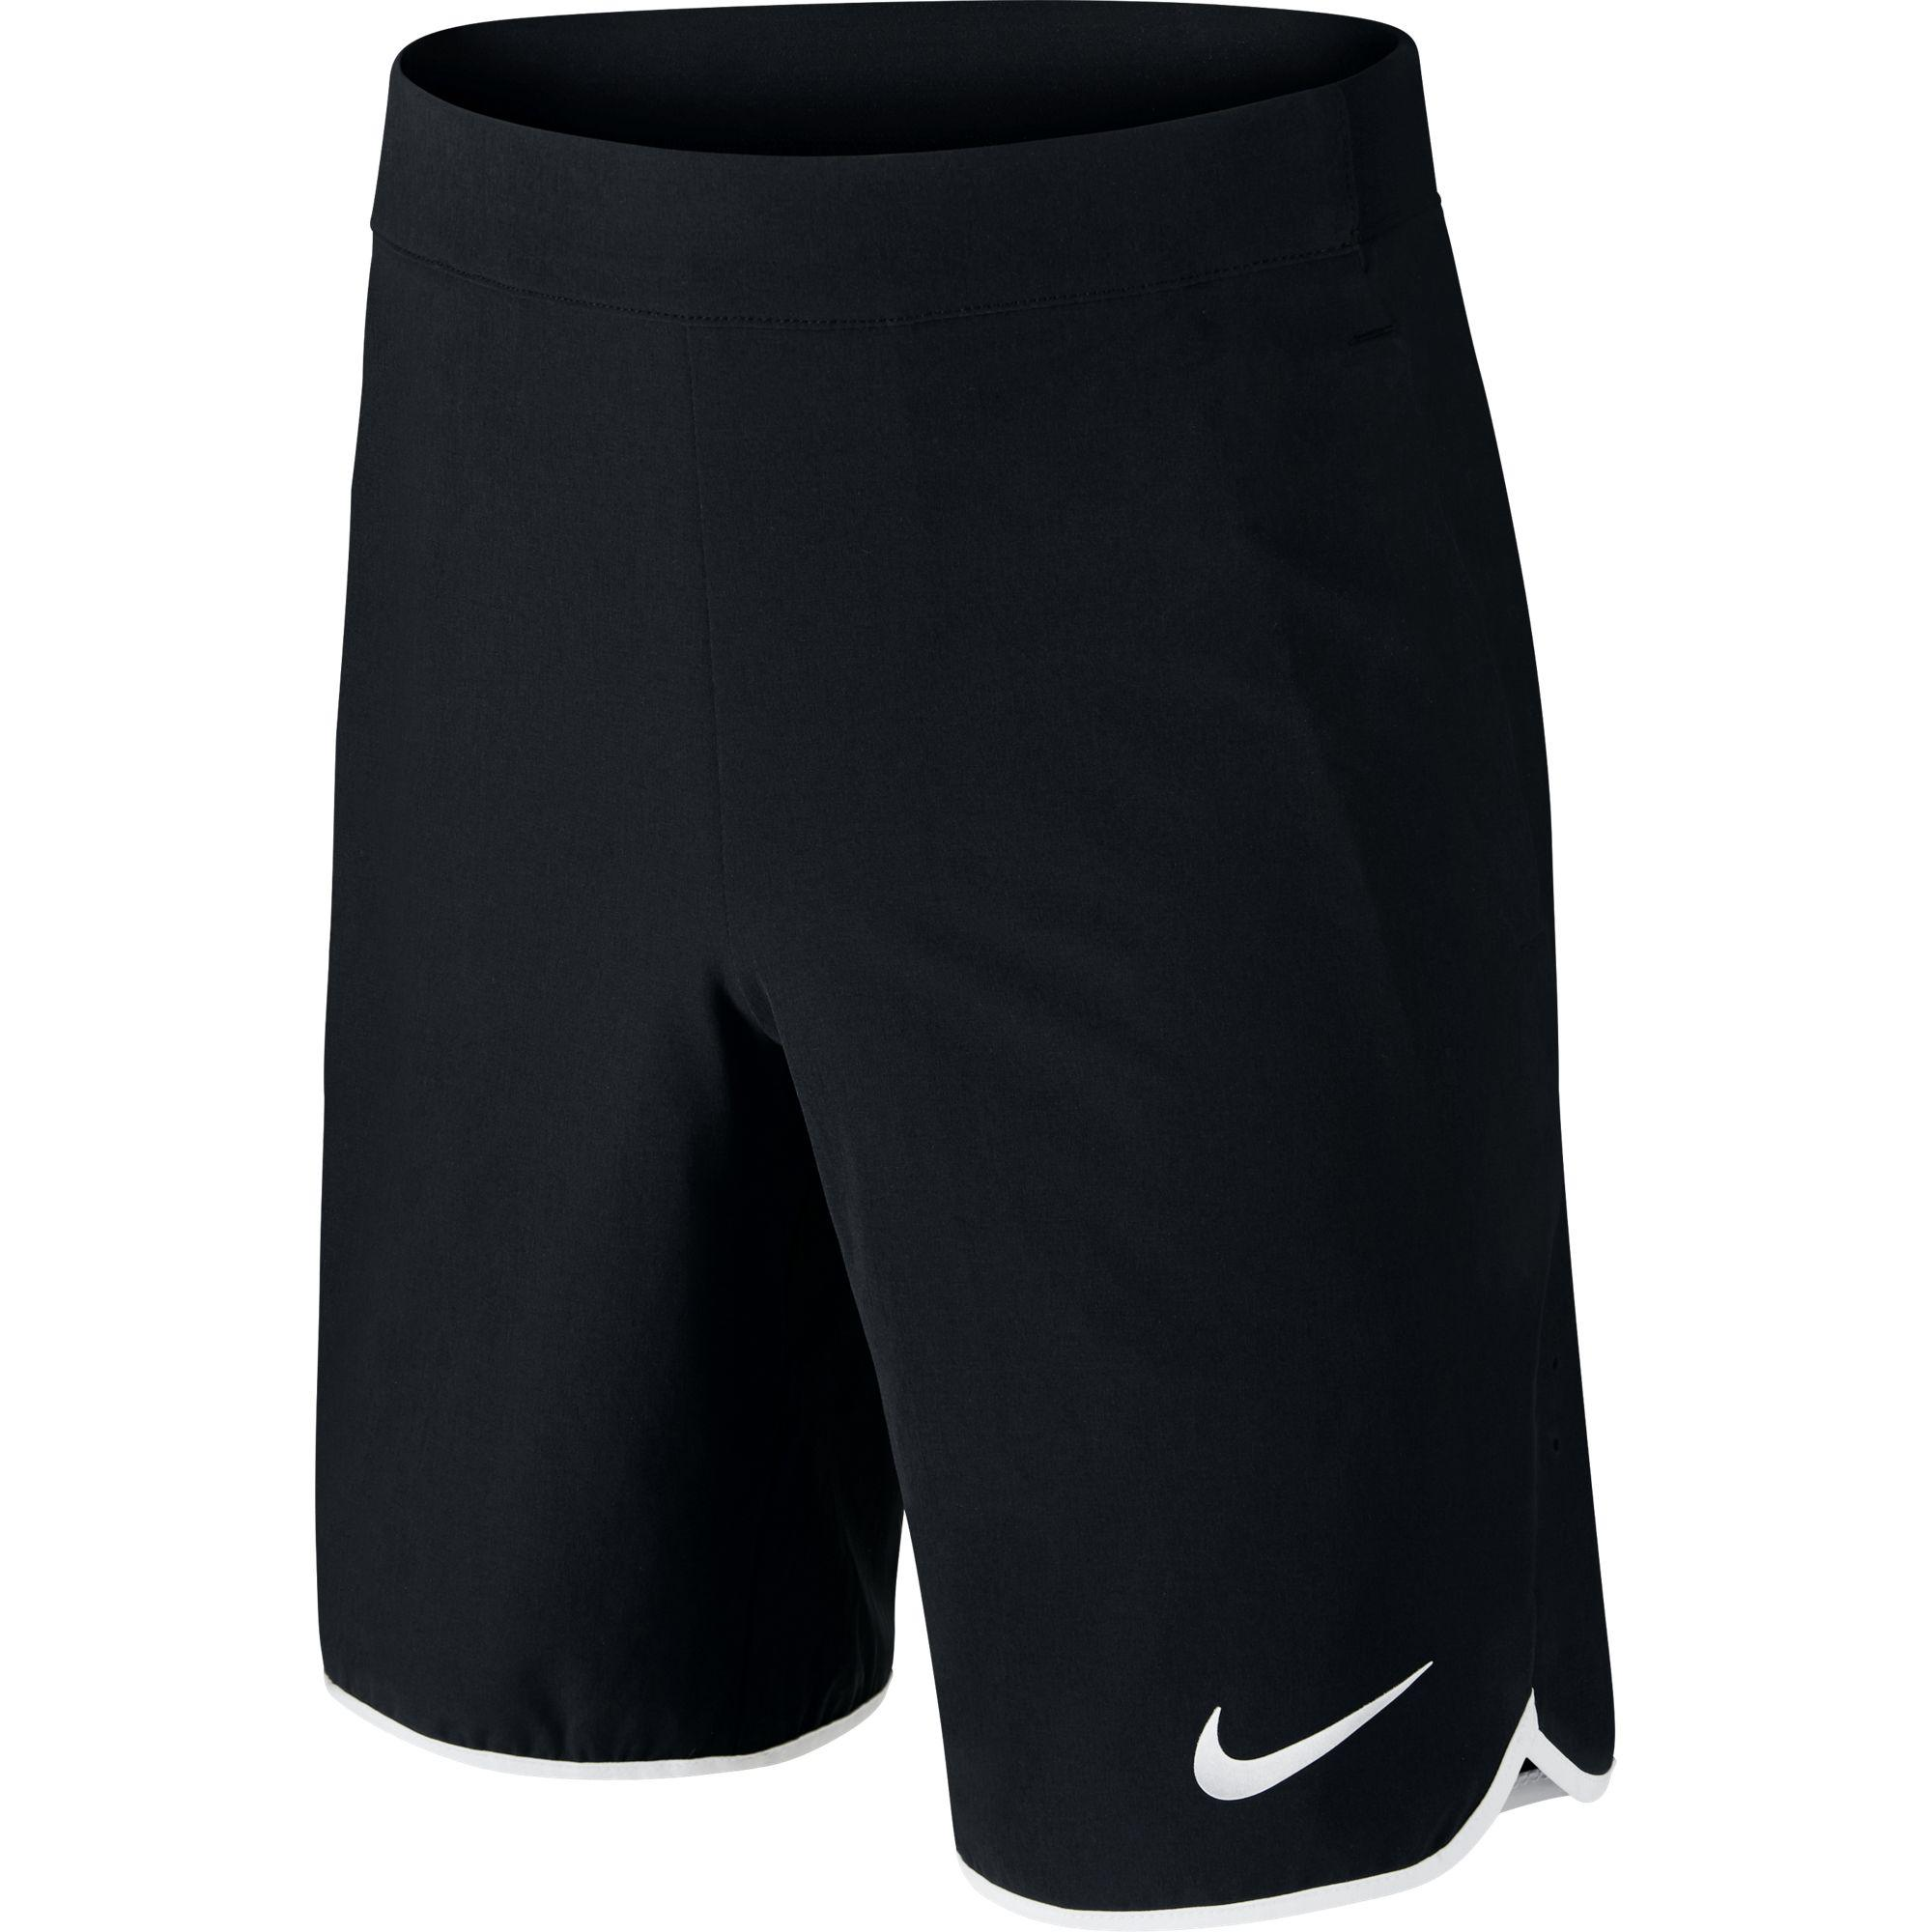 Nike Boys Gladiator Shorts - Black/White - Tennisnuts.com